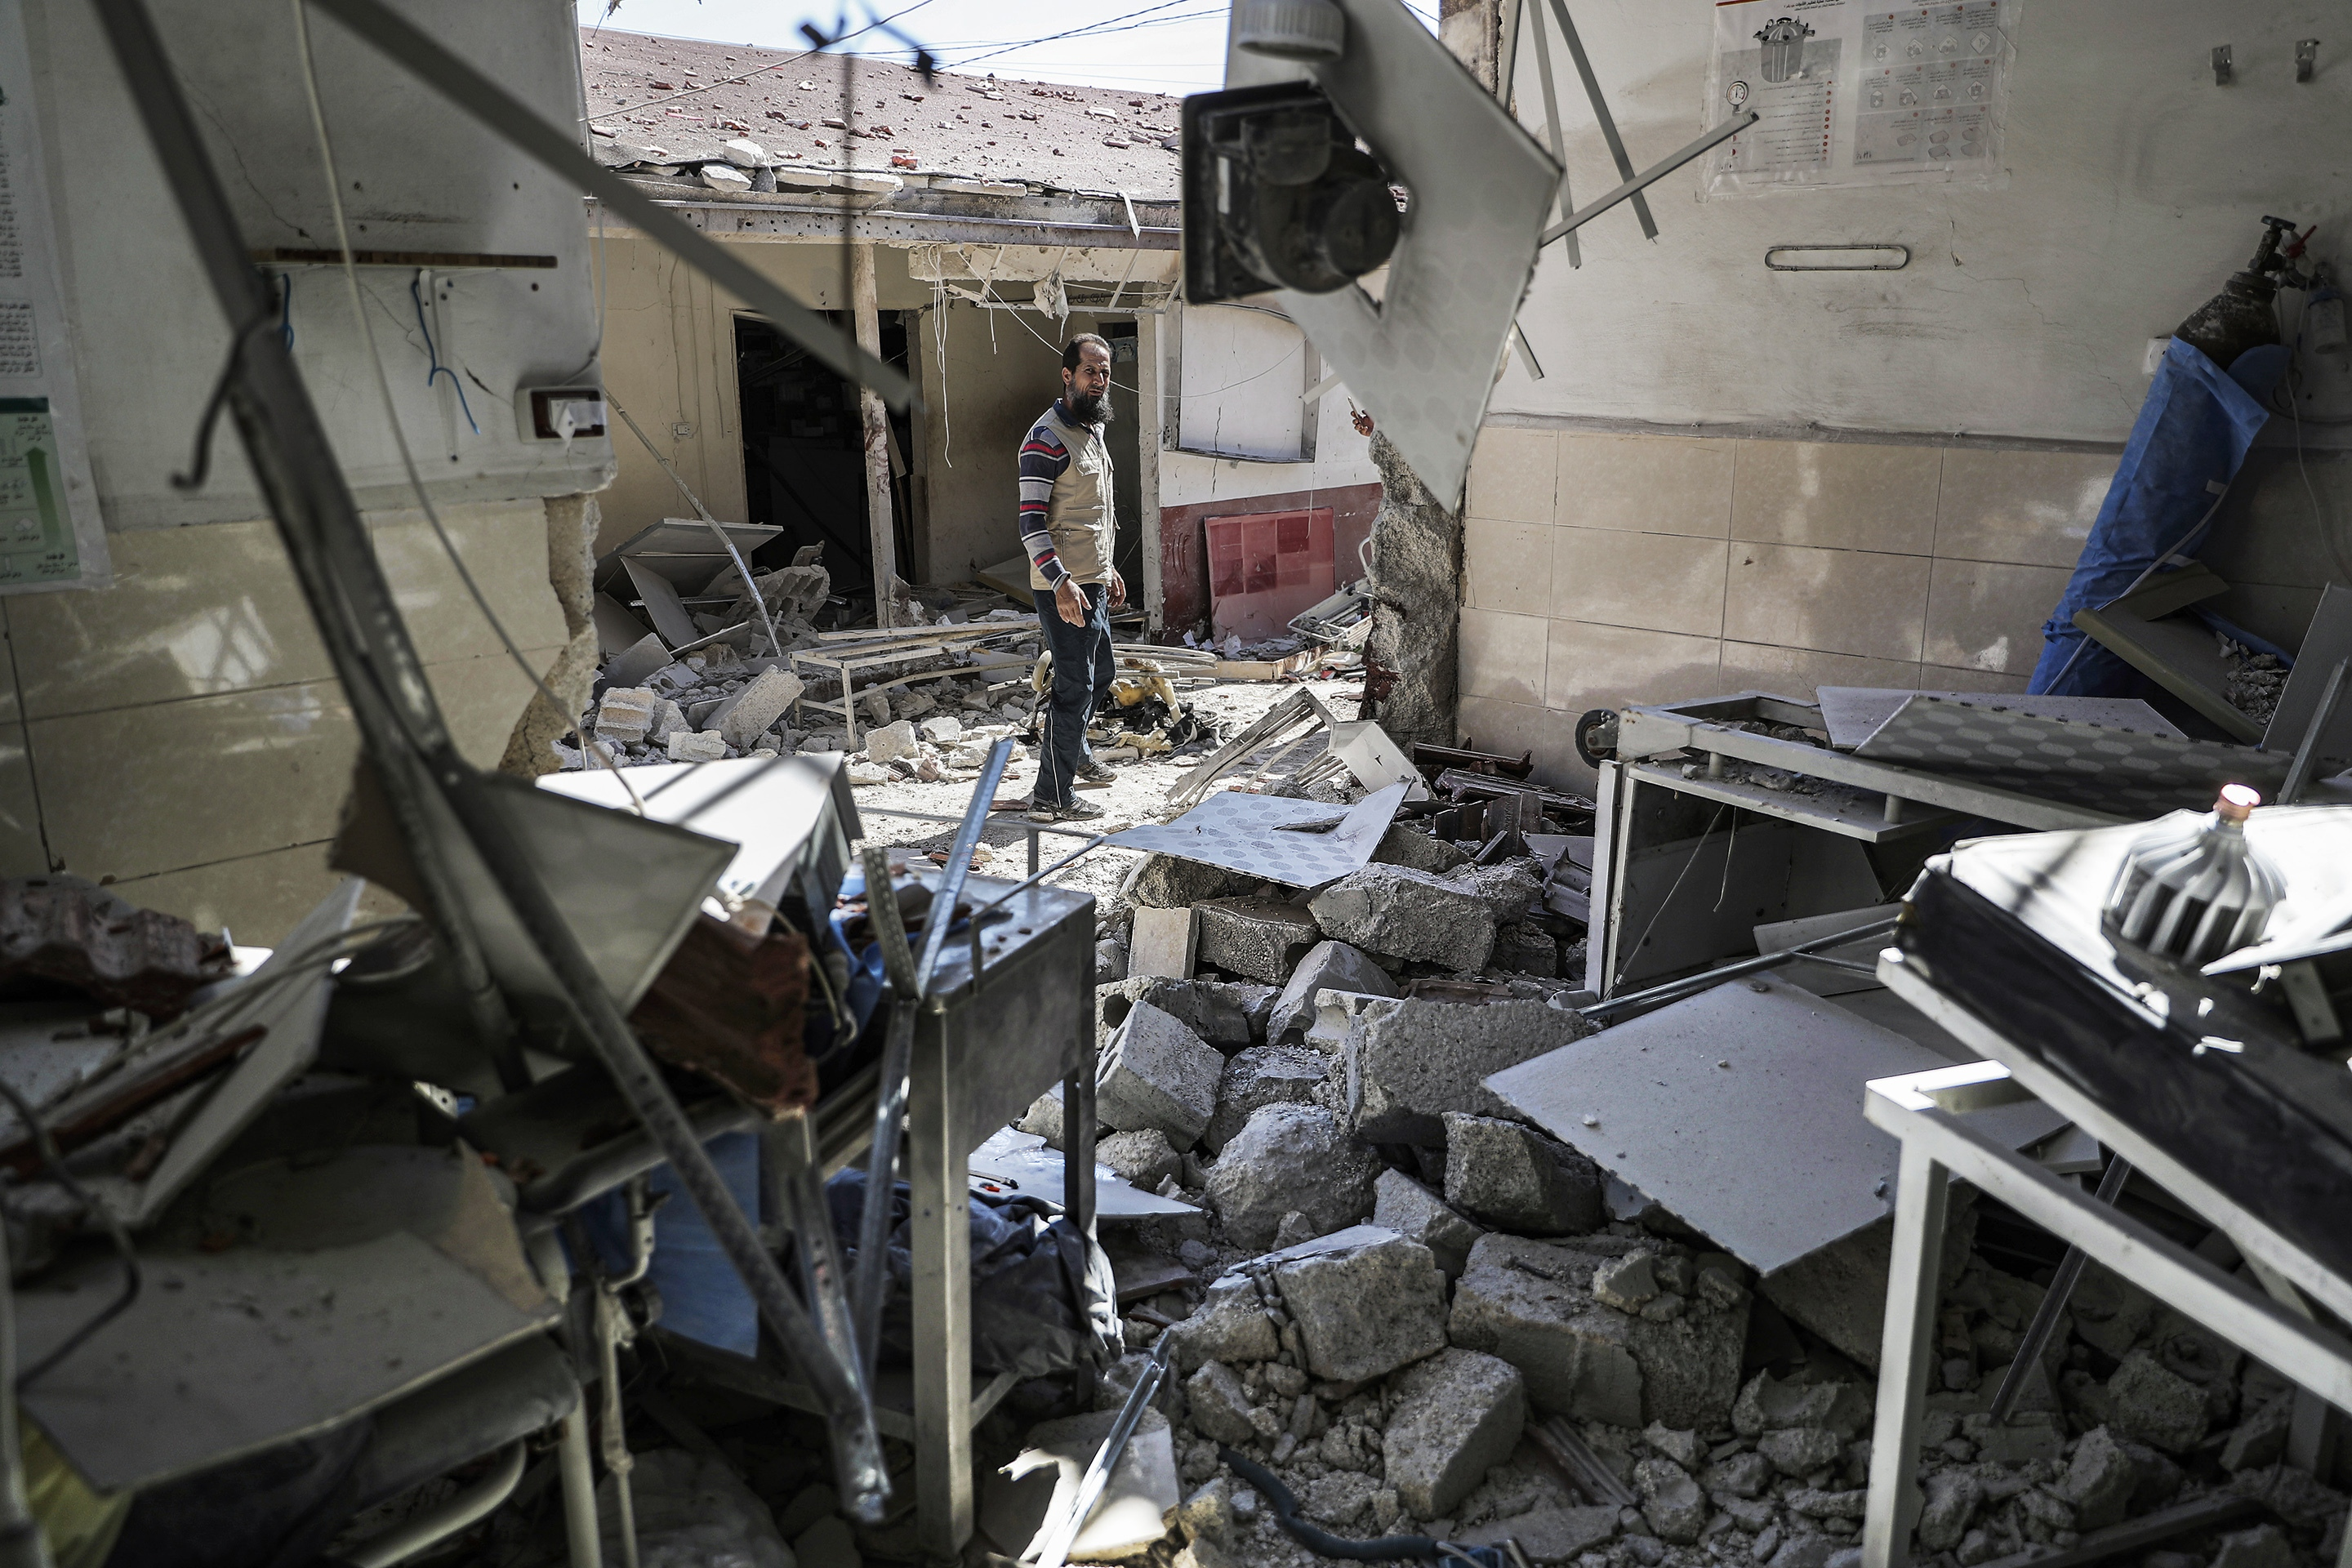 A Syrian man inspects the damage at al-Shifaa Hospital in Syria's northern town of Afrin, which is controlled by Turkish-backed rebels, a day after it was reportedly targeted, along with neighbouring residential areas, by a rocket attack launched by the Syrian government.